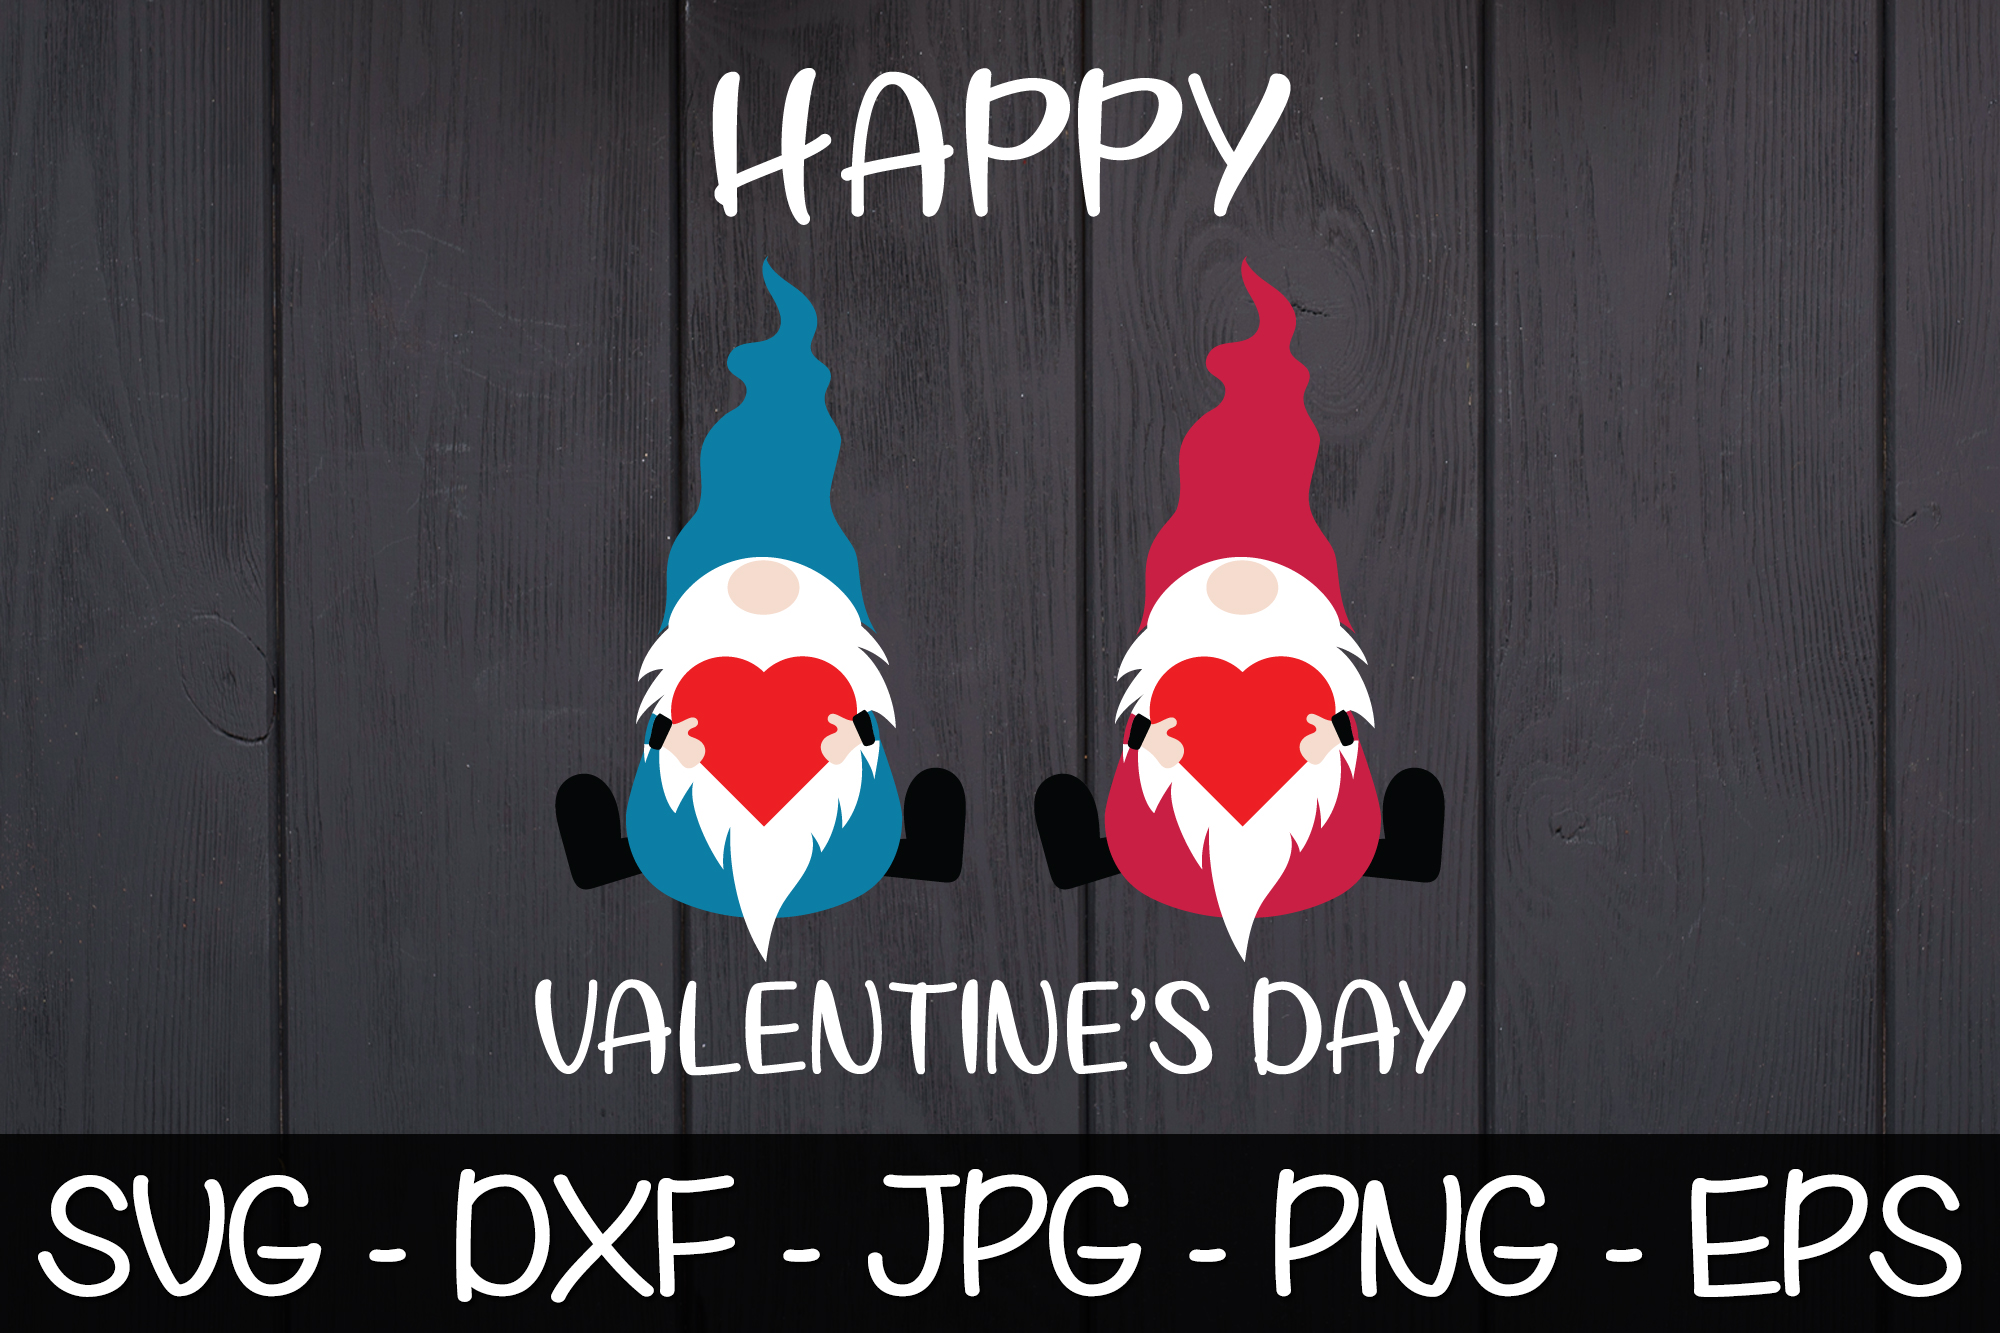 Happy Valentine's Day Gnomes SVG EPS PNG Valentine Gnomes example image 1